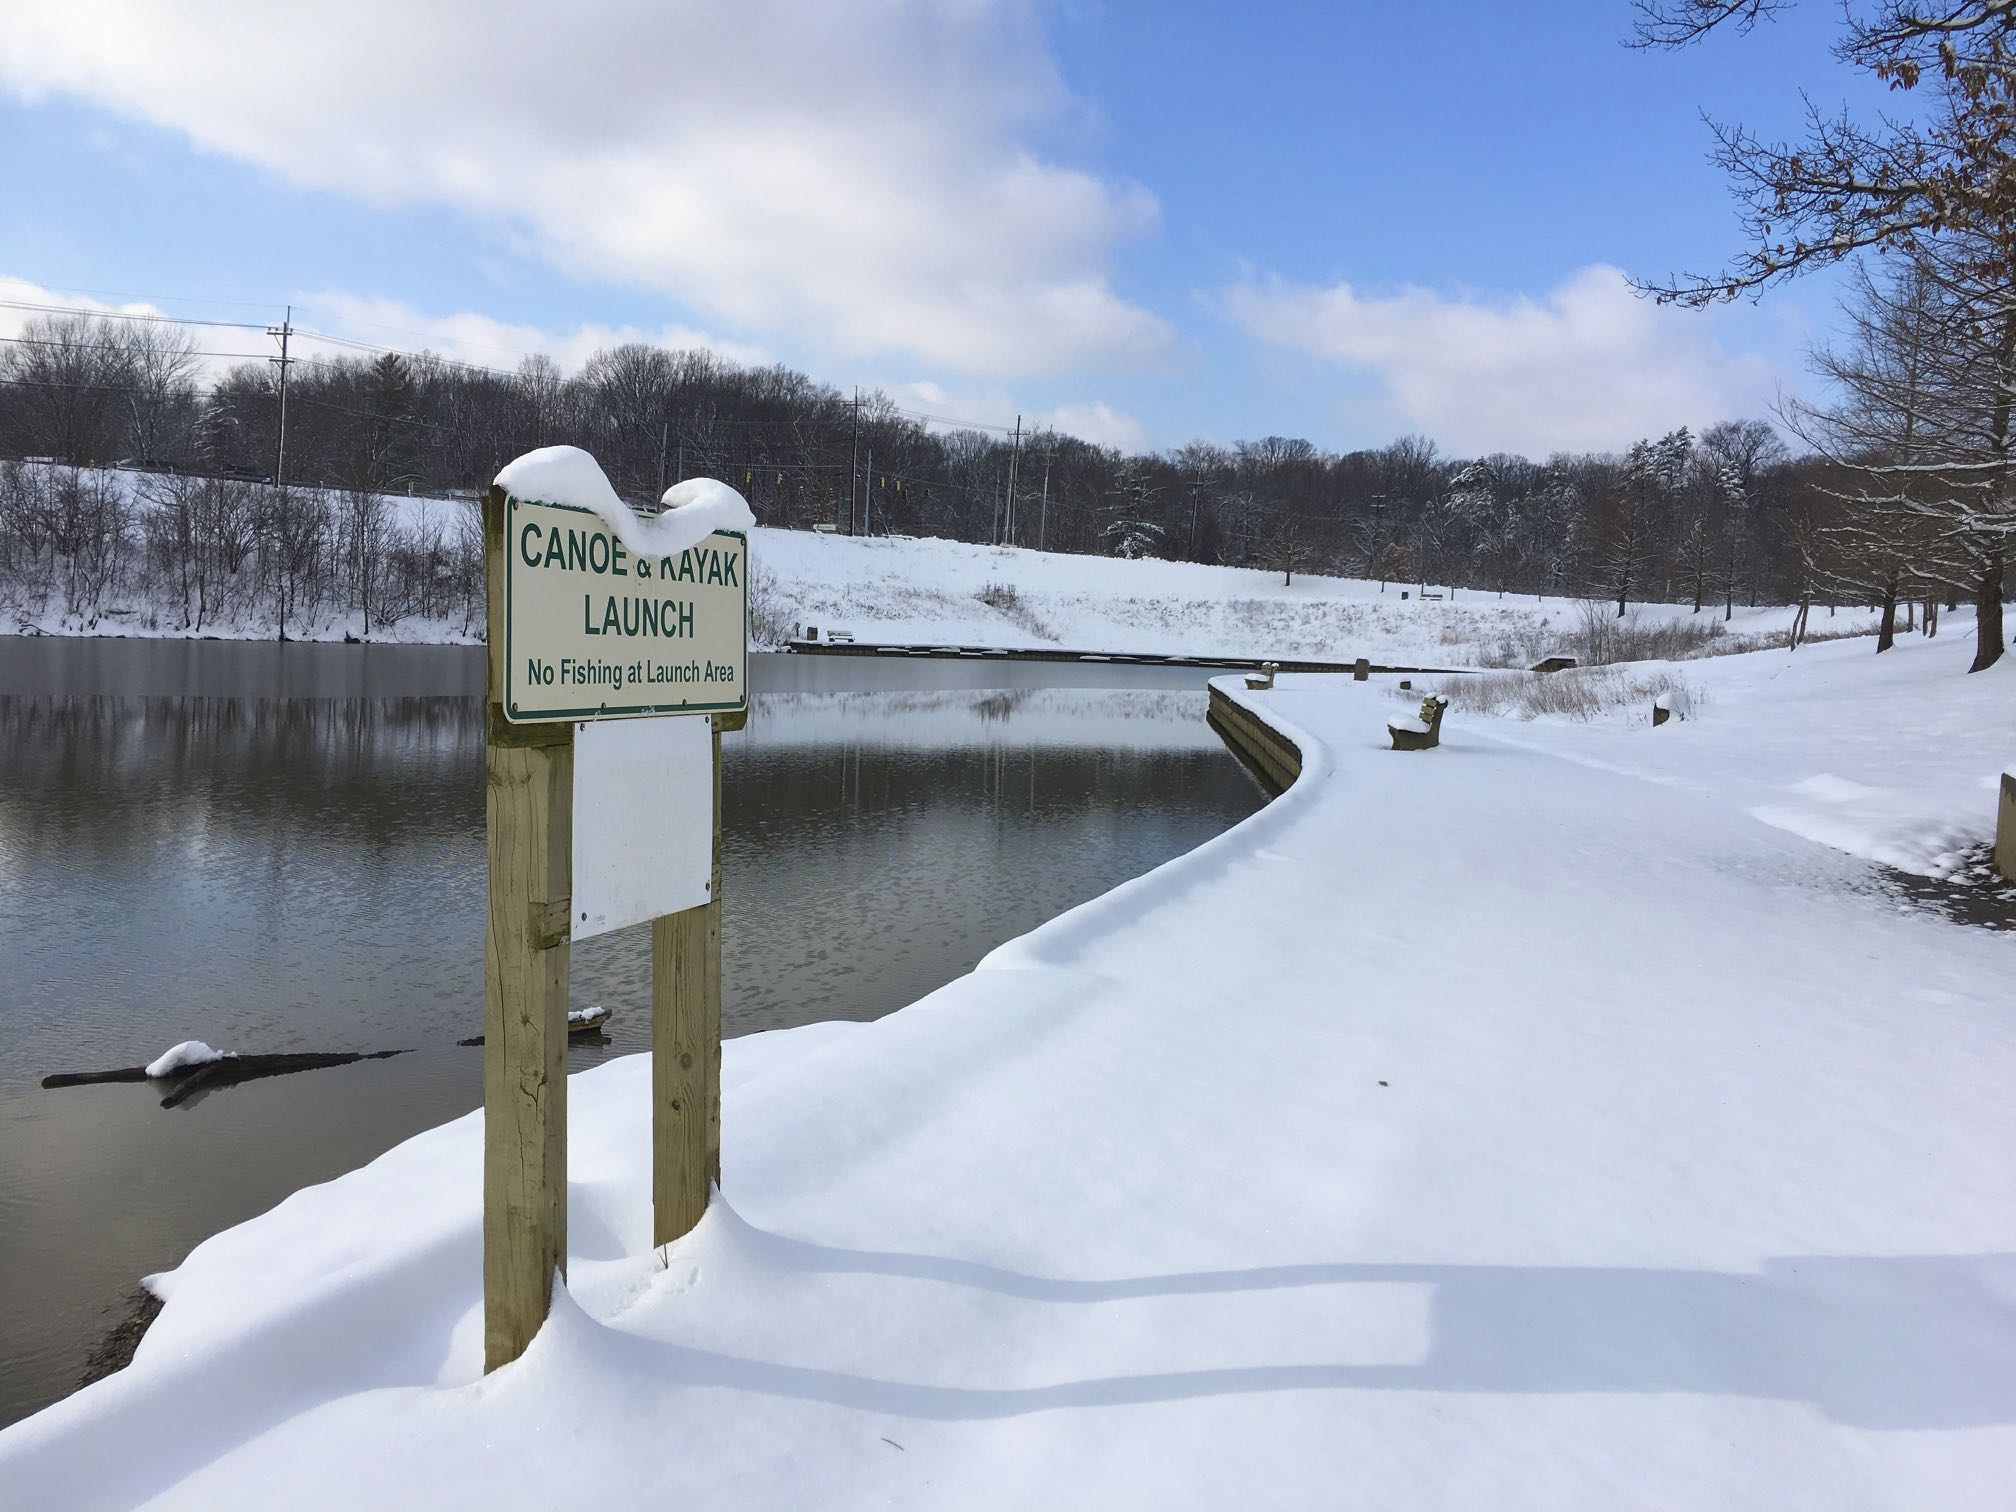 A canoe and kayak launch sign is covered in snow while the lake behind it is frozen. All the benches and path surrounding the lake are also covered in snow.